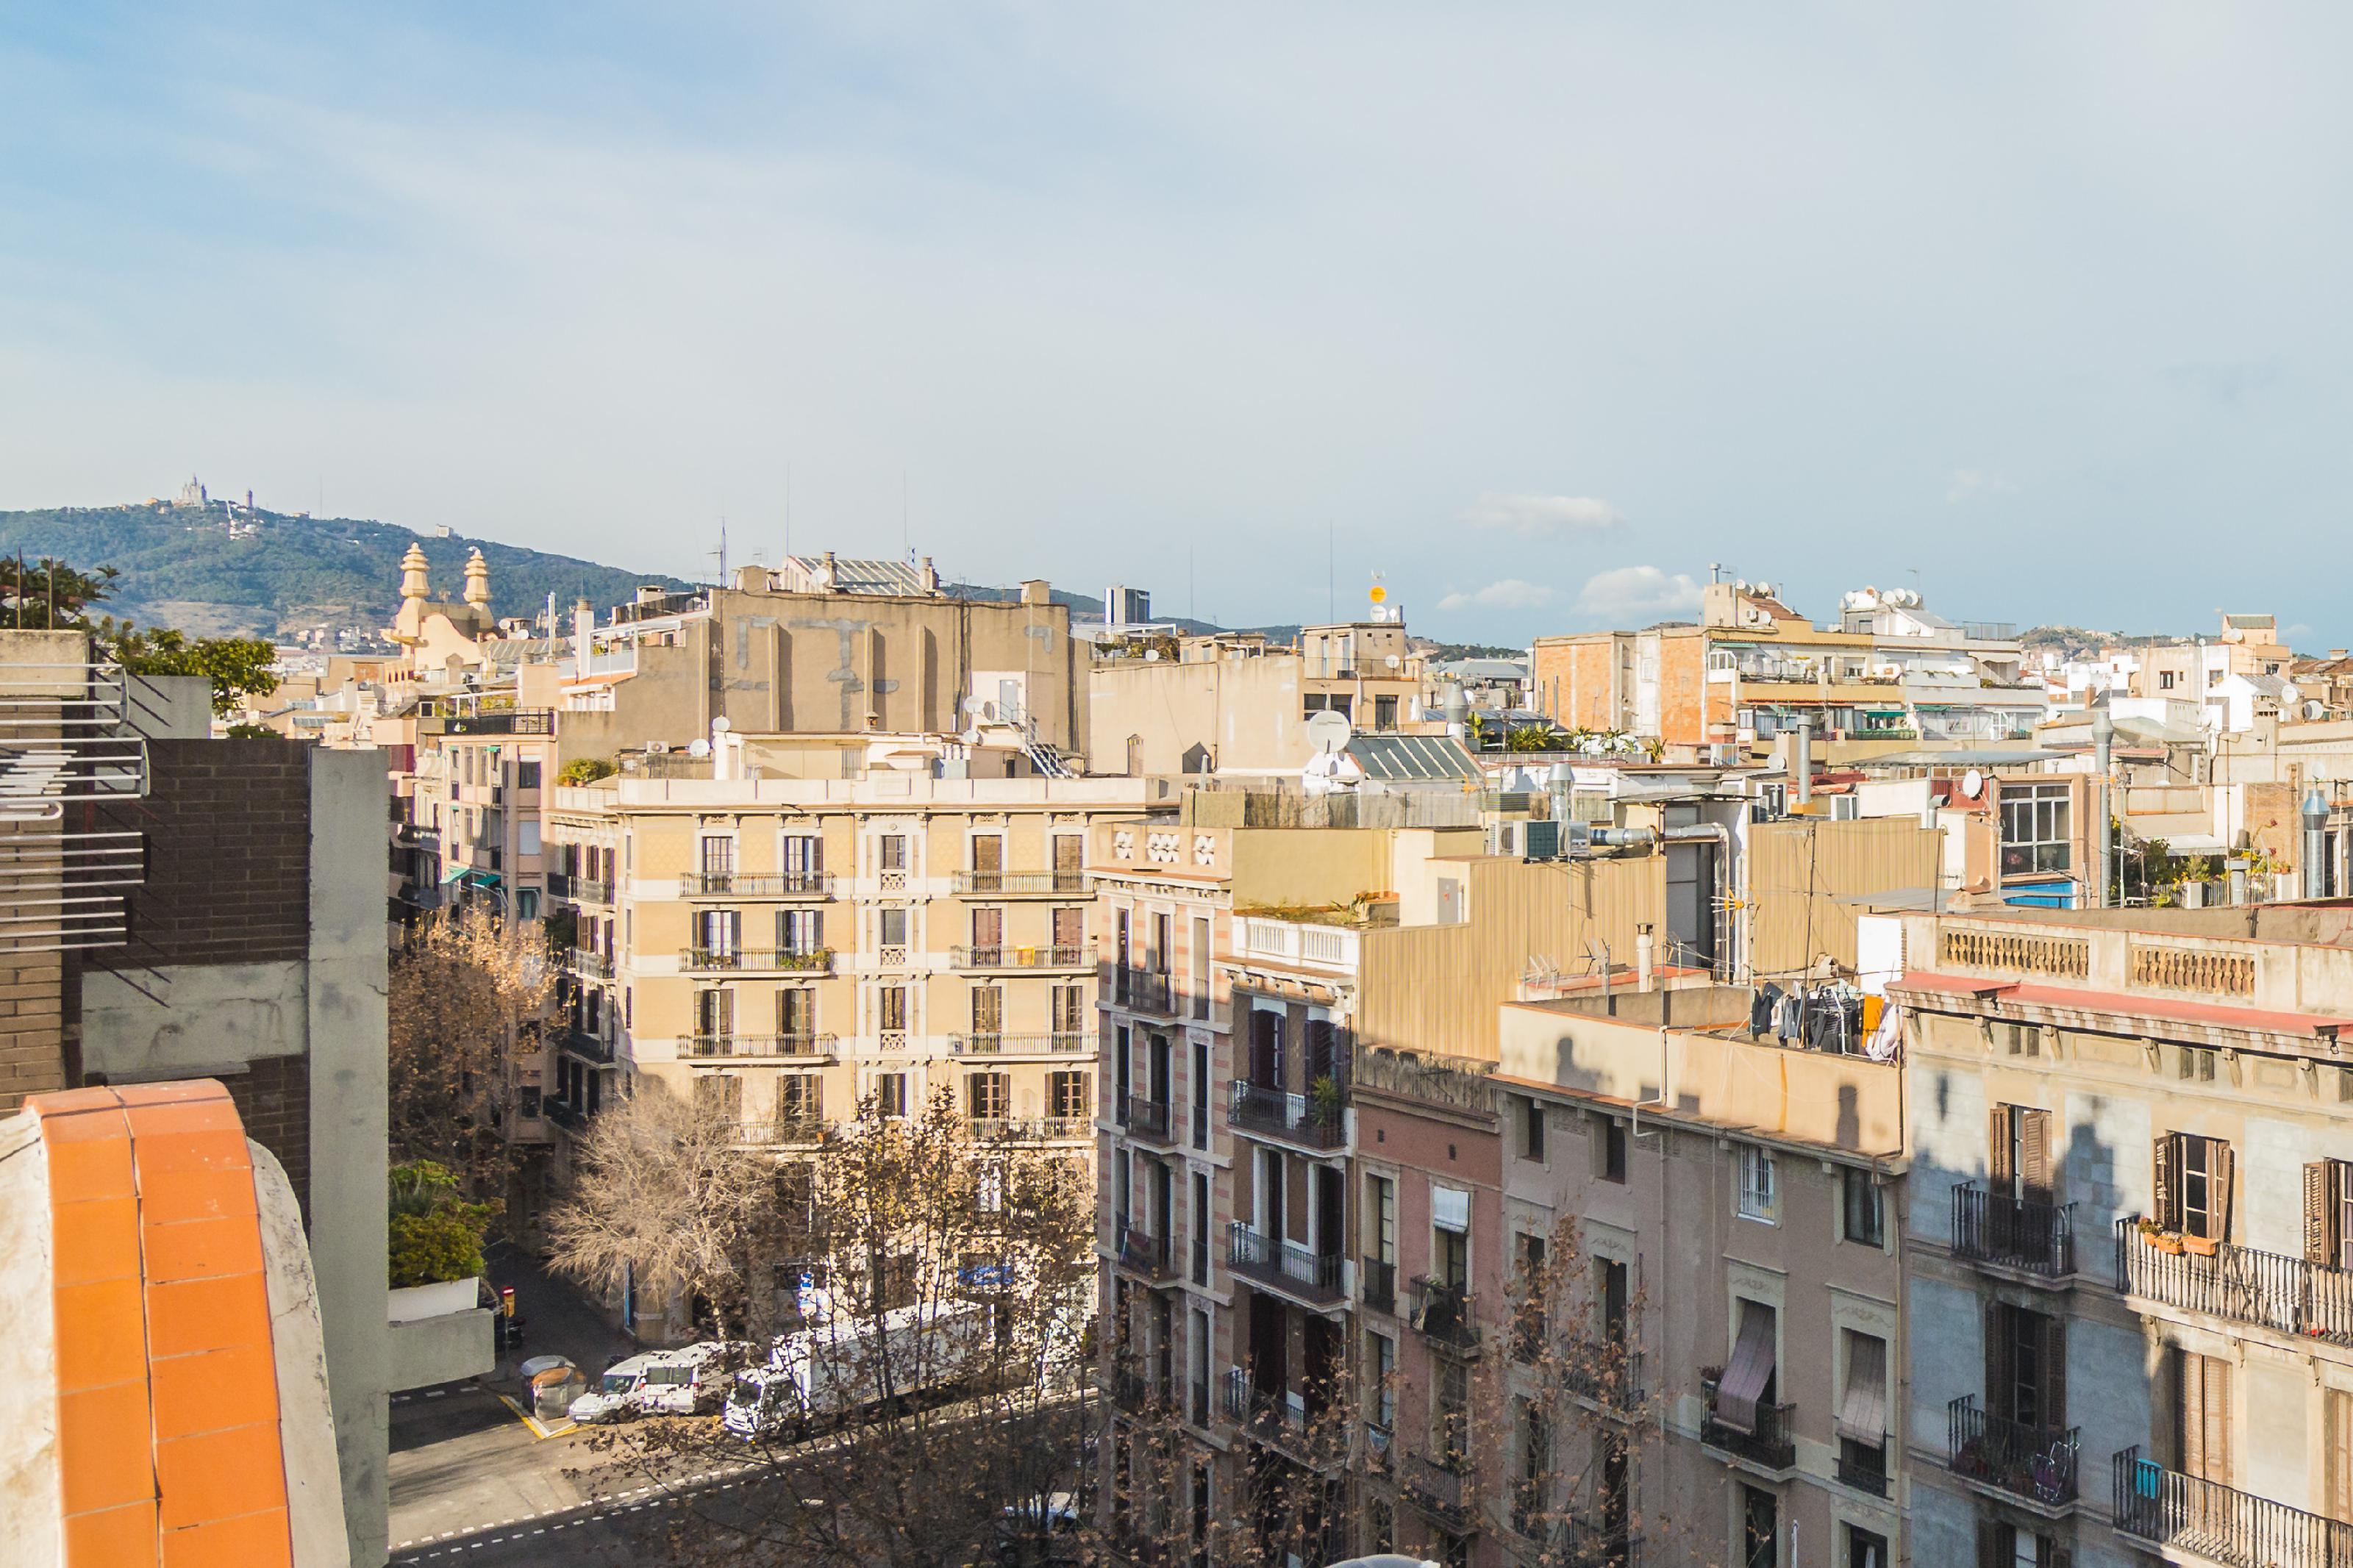 221579 Commercial Premises for sale in Eixample, Old Left Eixample 8